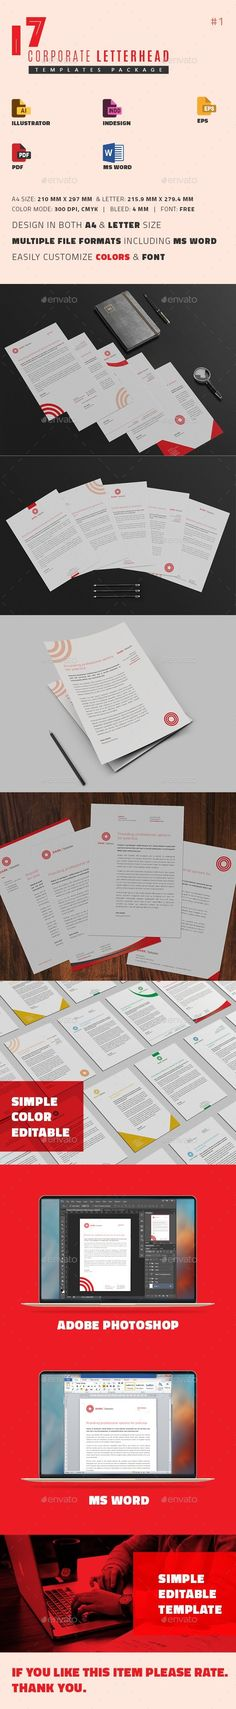 Letterhead Template Letterhead template, Template and Stationery - ms word letterhead templates free download